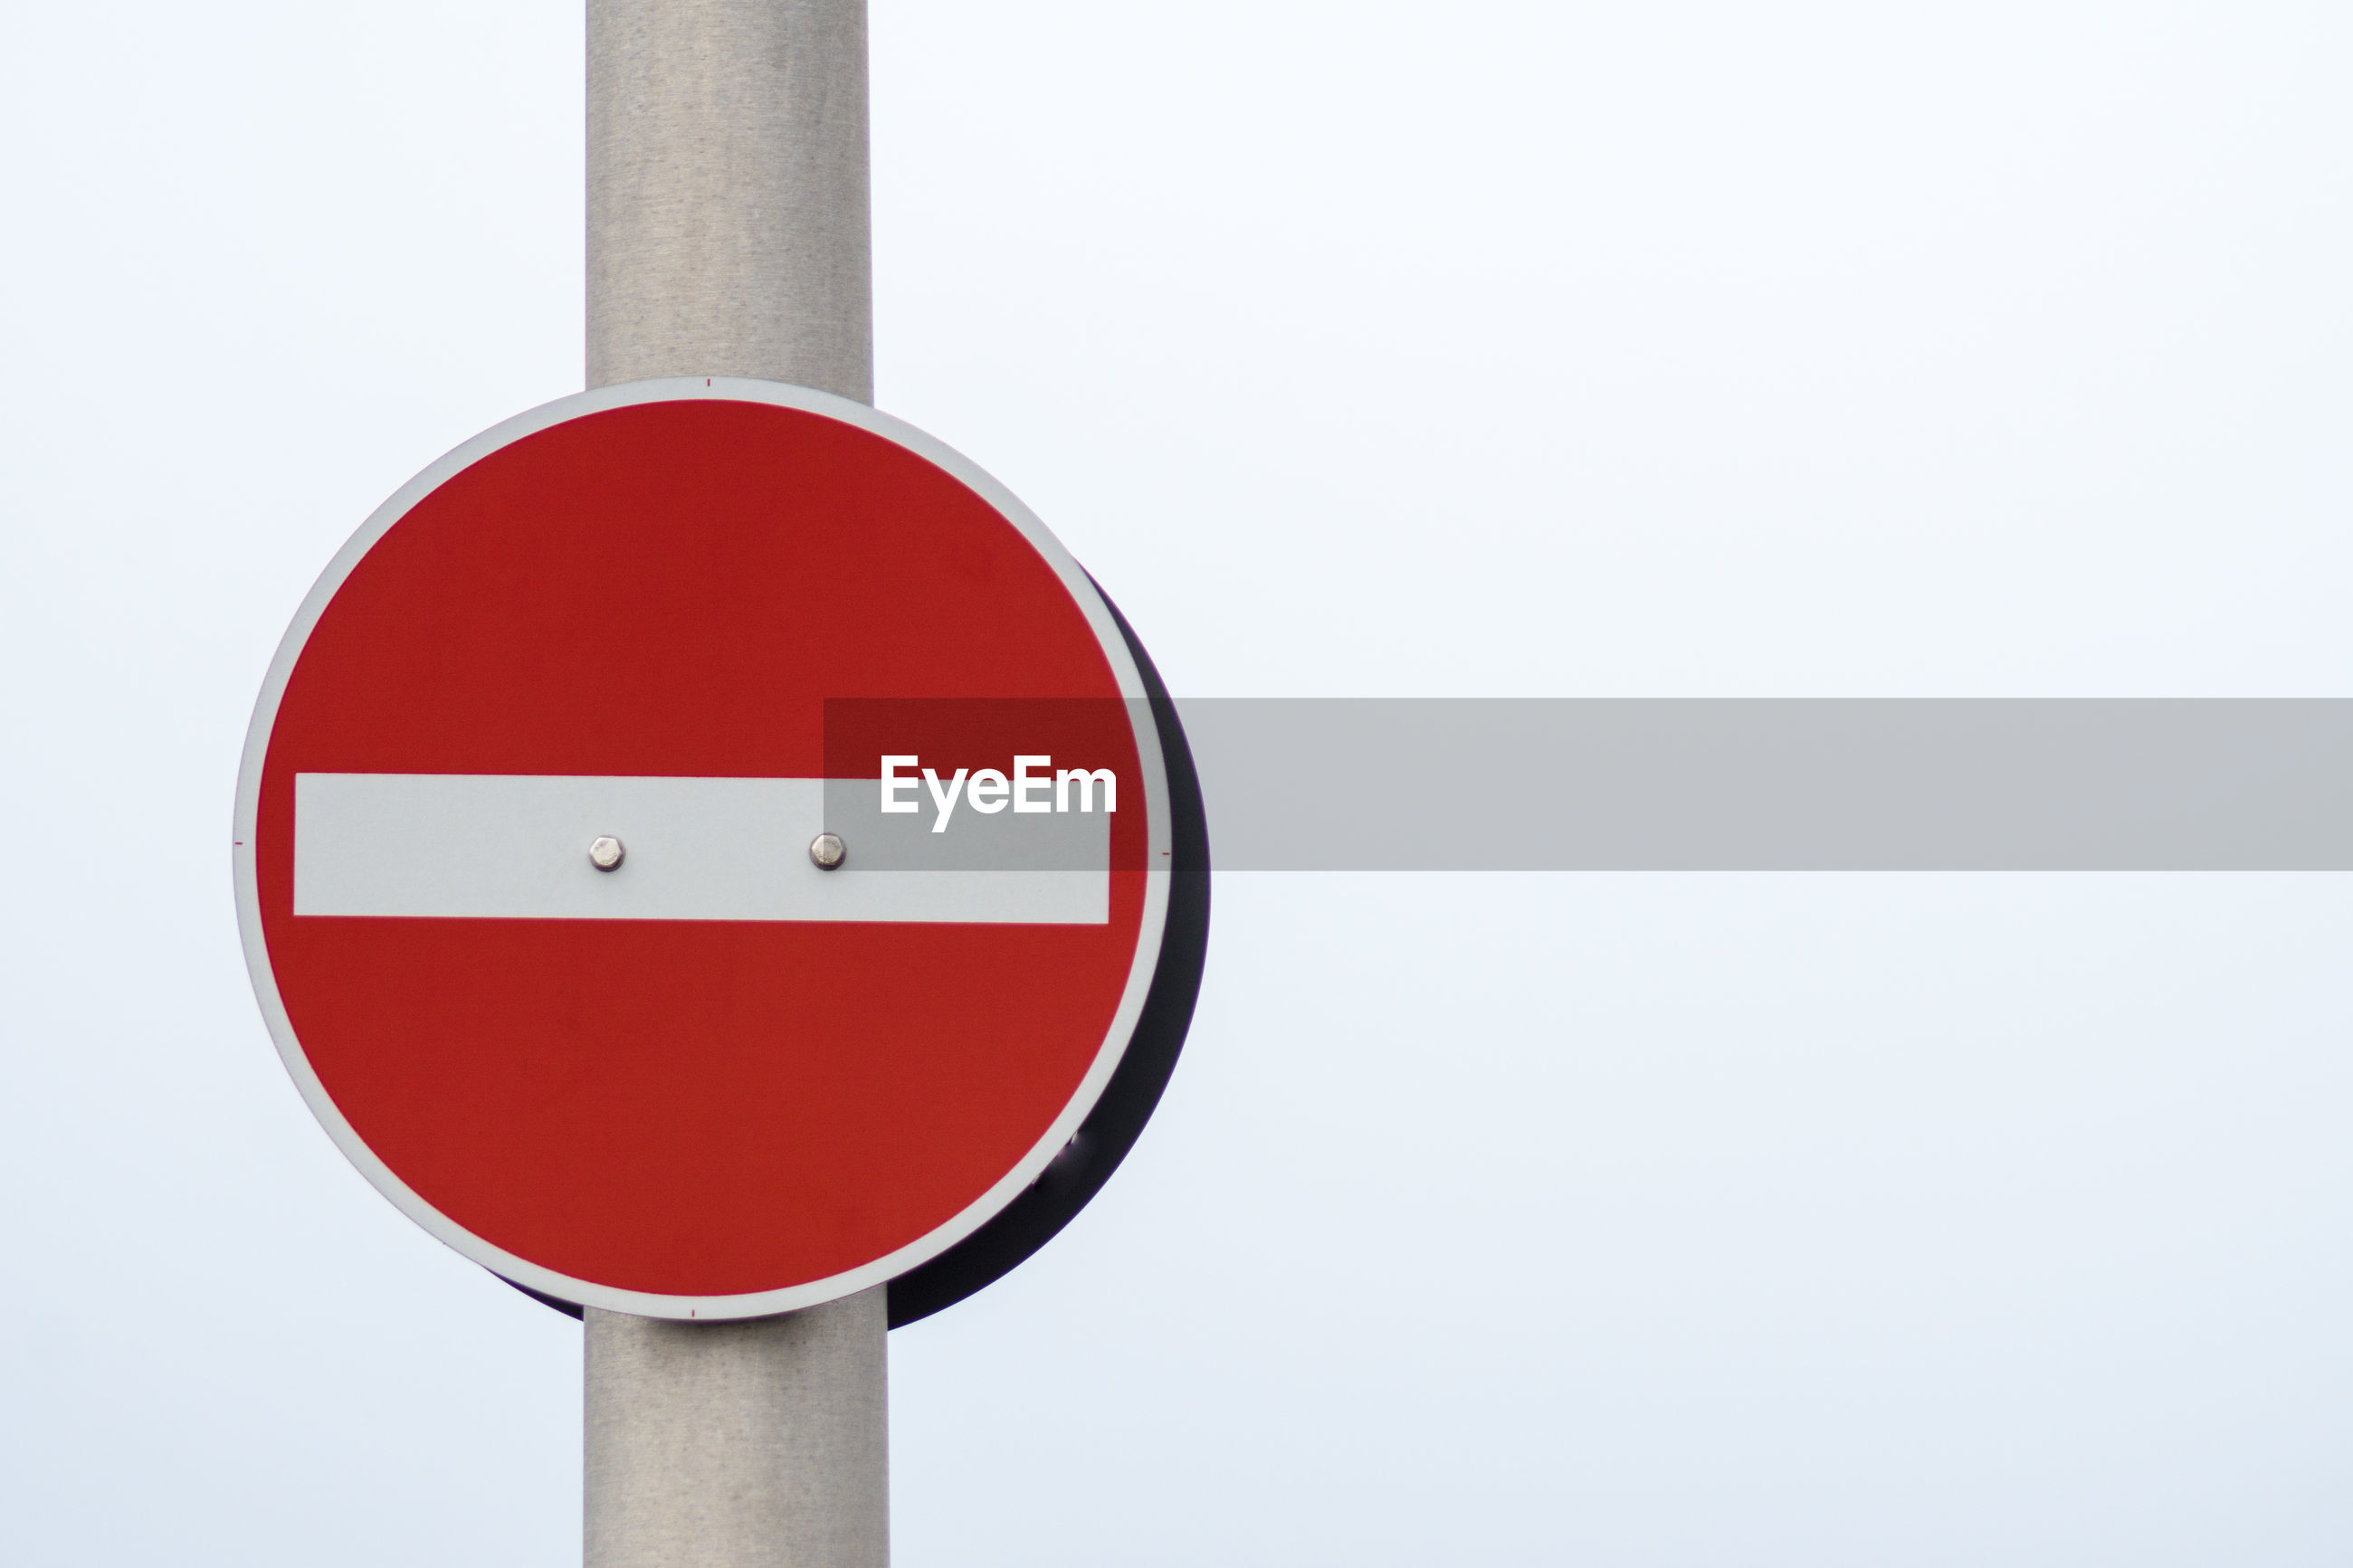 Close-up of do not enter sign against clear sky